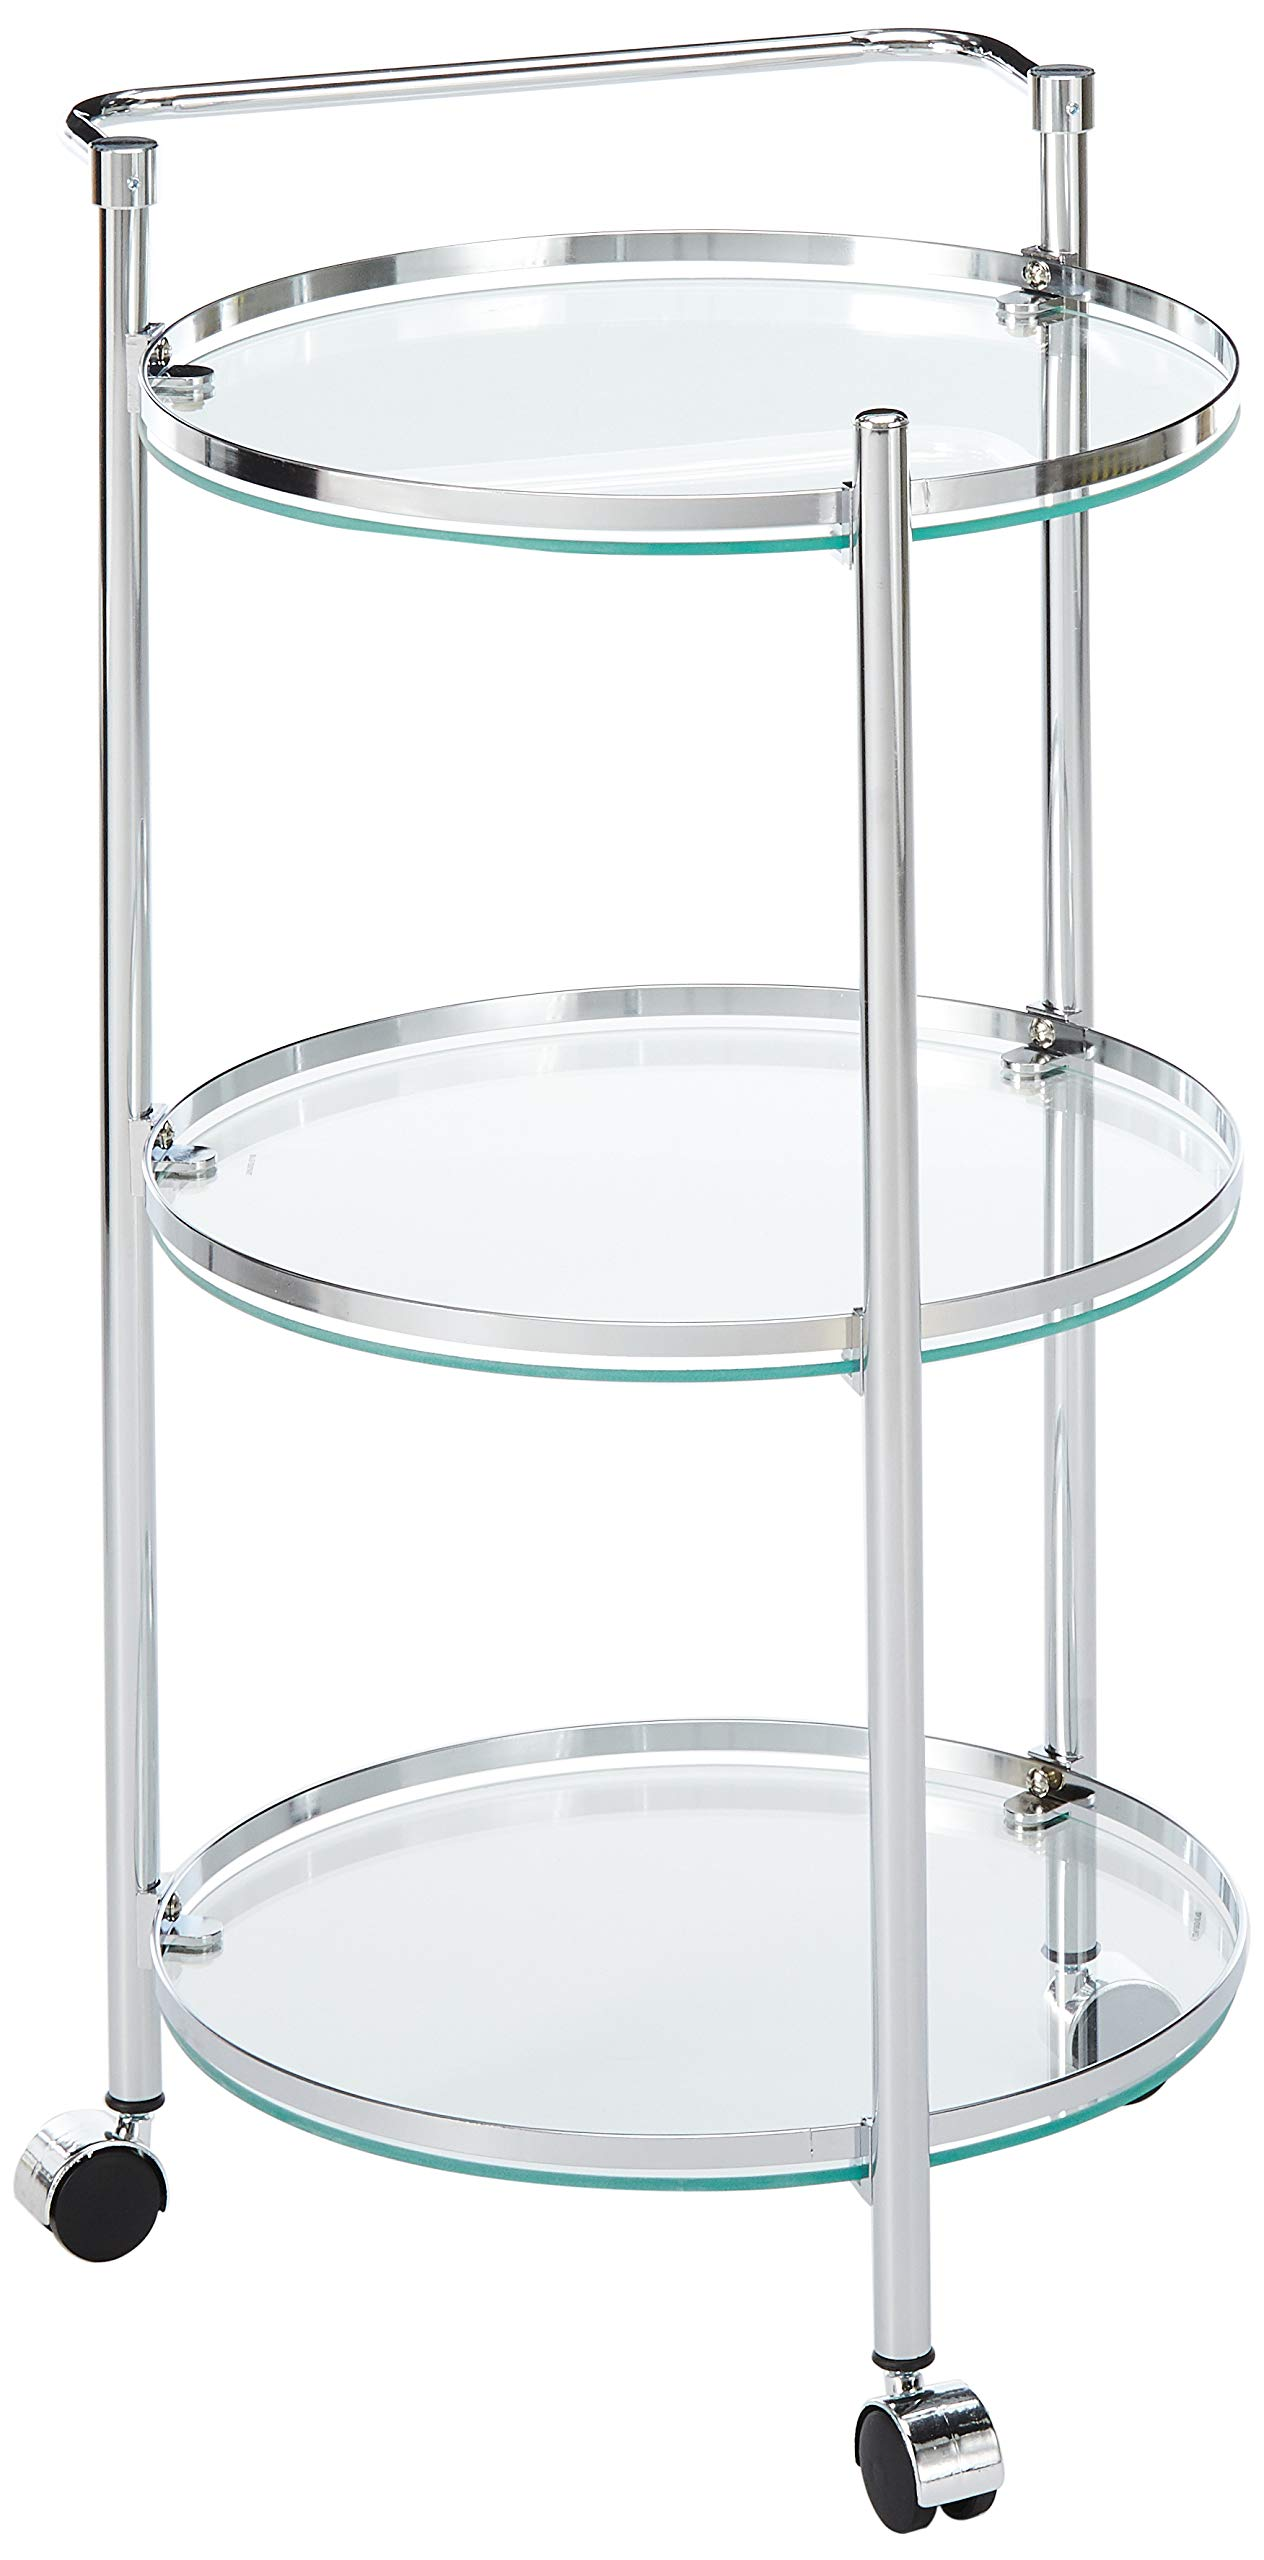 Organize It All Rolling 3 Tier Glass Circular Serving Cart by Organize It All